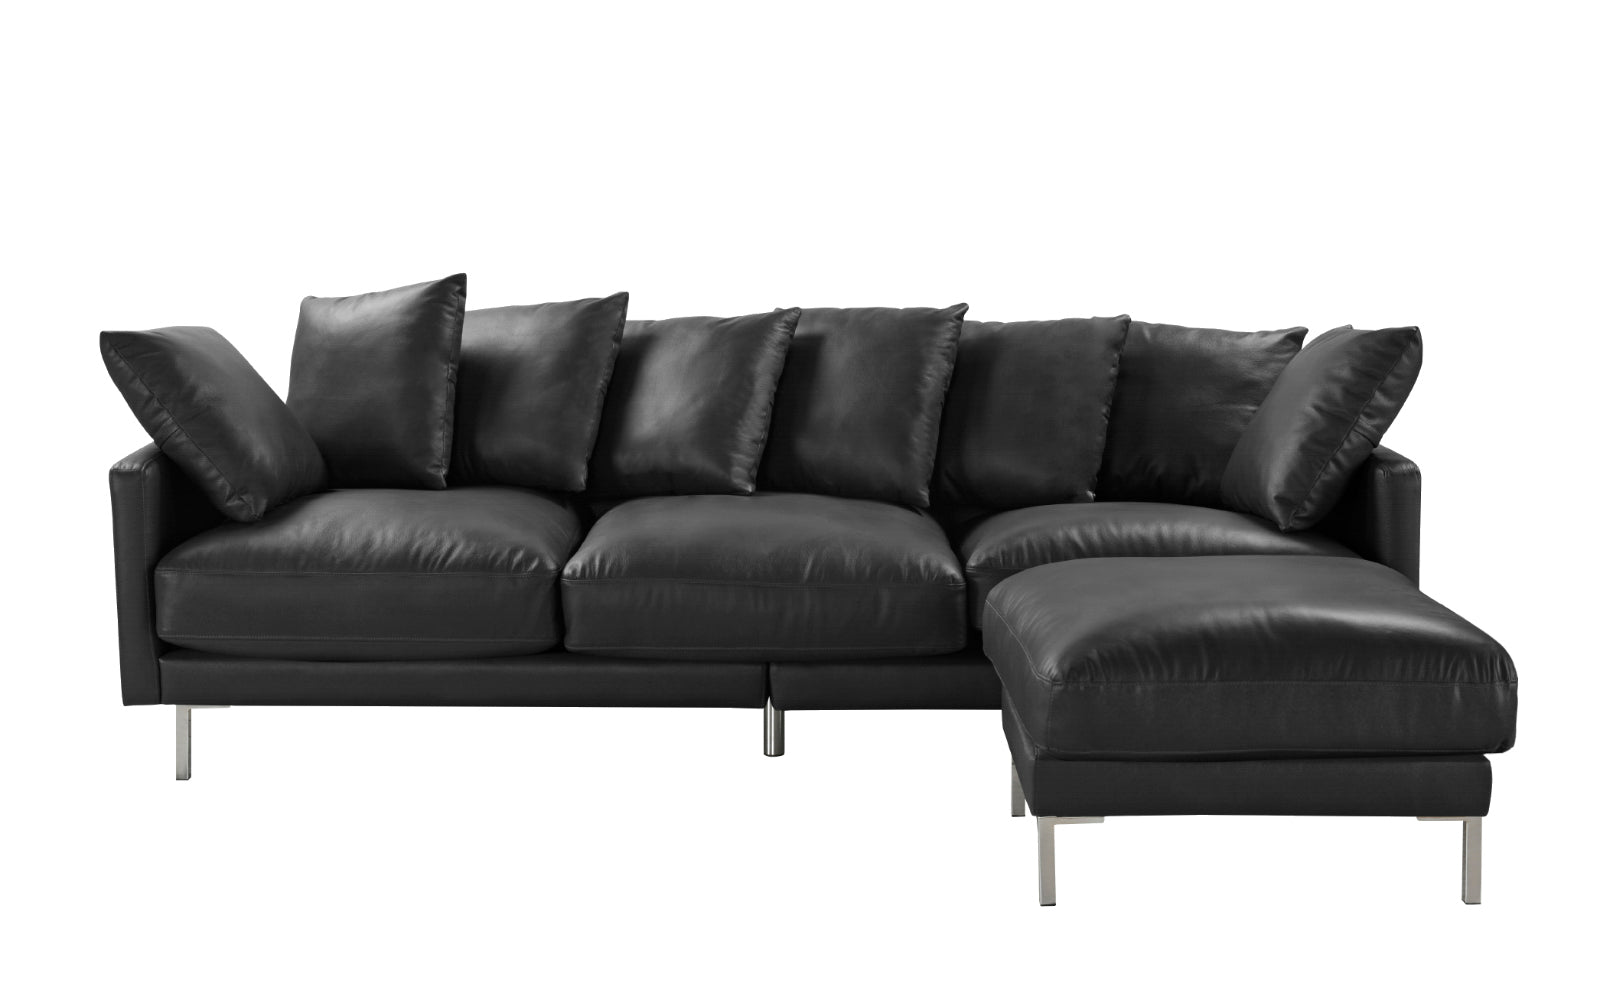 Albany Modern Leather Match Sectional Sofa with Steel Legs ...